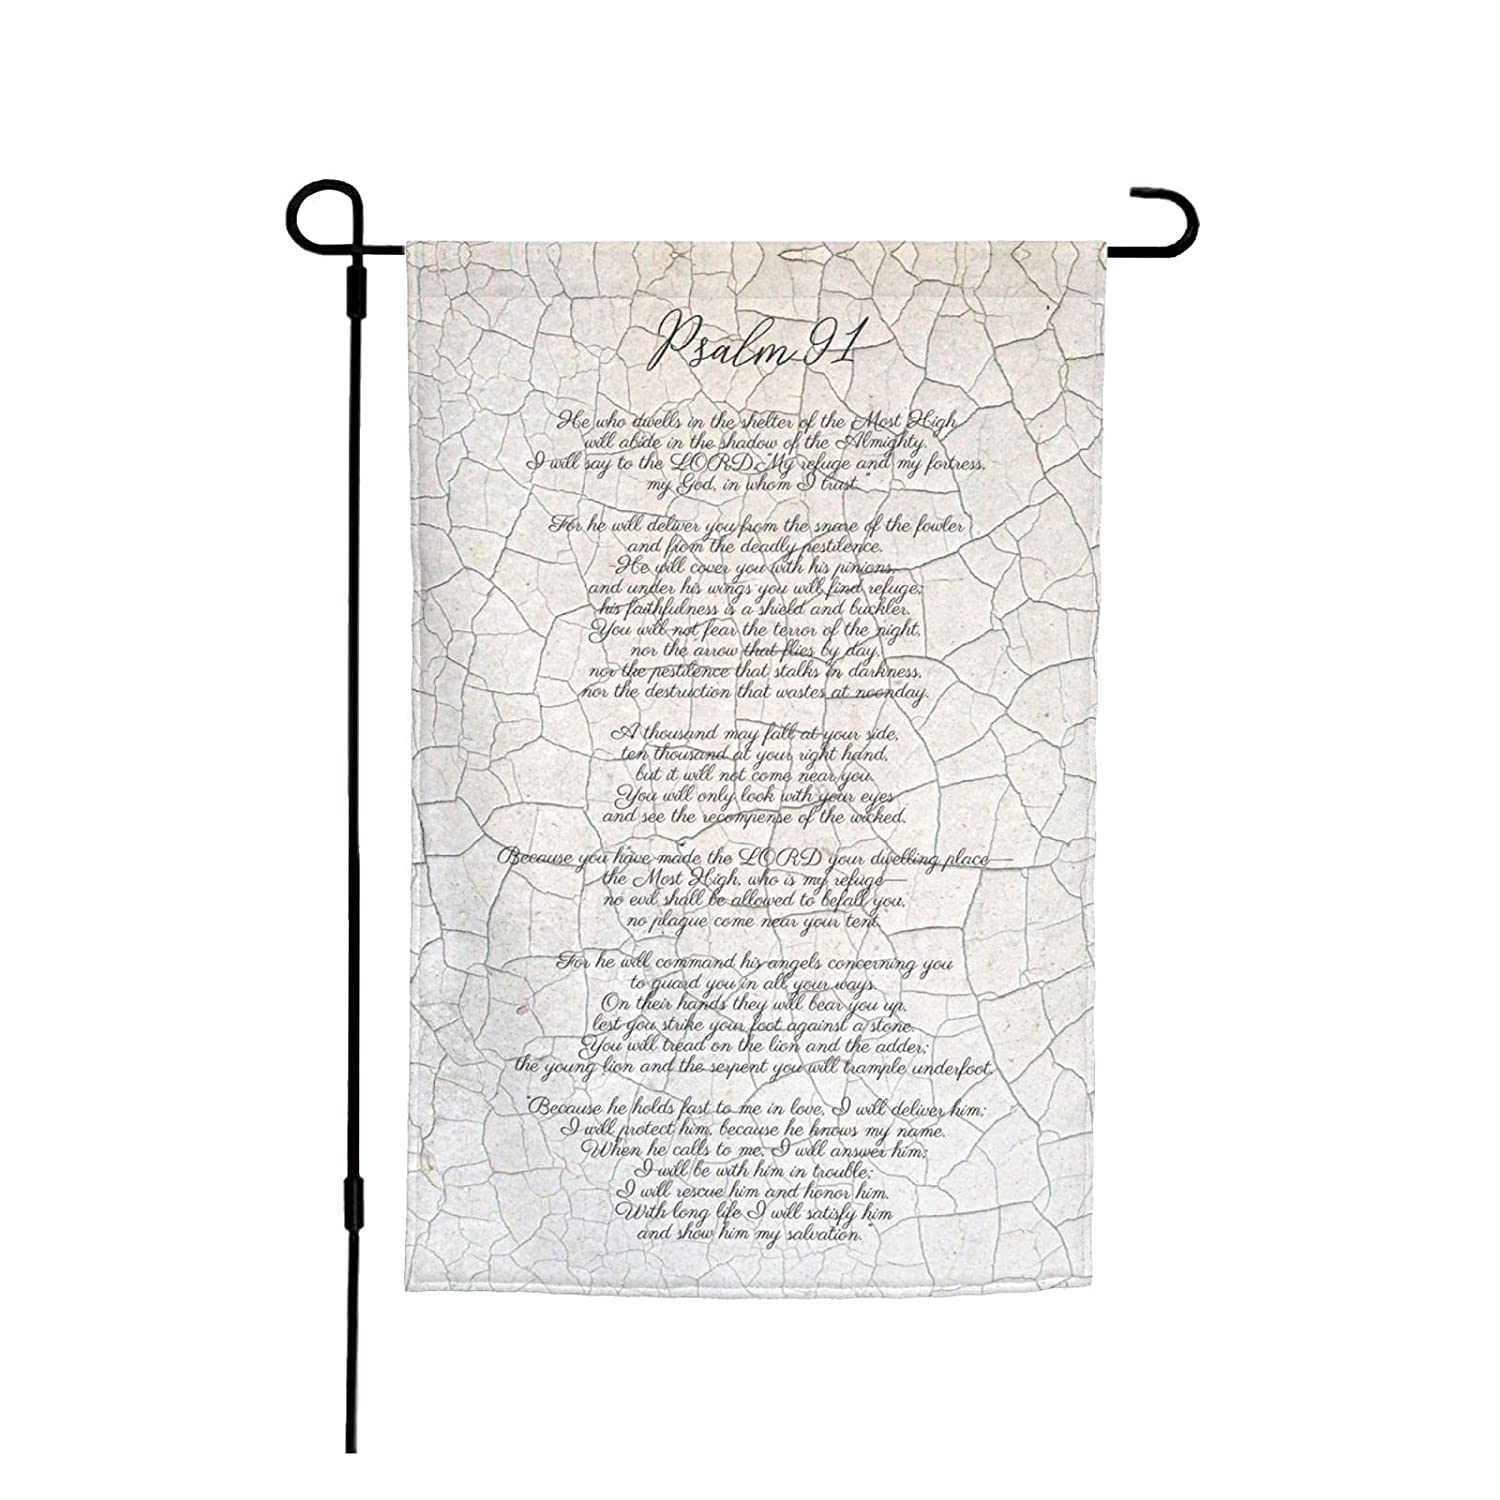 Psalm 91 He Will Cover You With His Feathers Bible Verse Christian Garden Flag Foot Spring Outside Outdoor Indoor House Room Decoration Banner - Canvas Header And Double Stitched 12x18inch